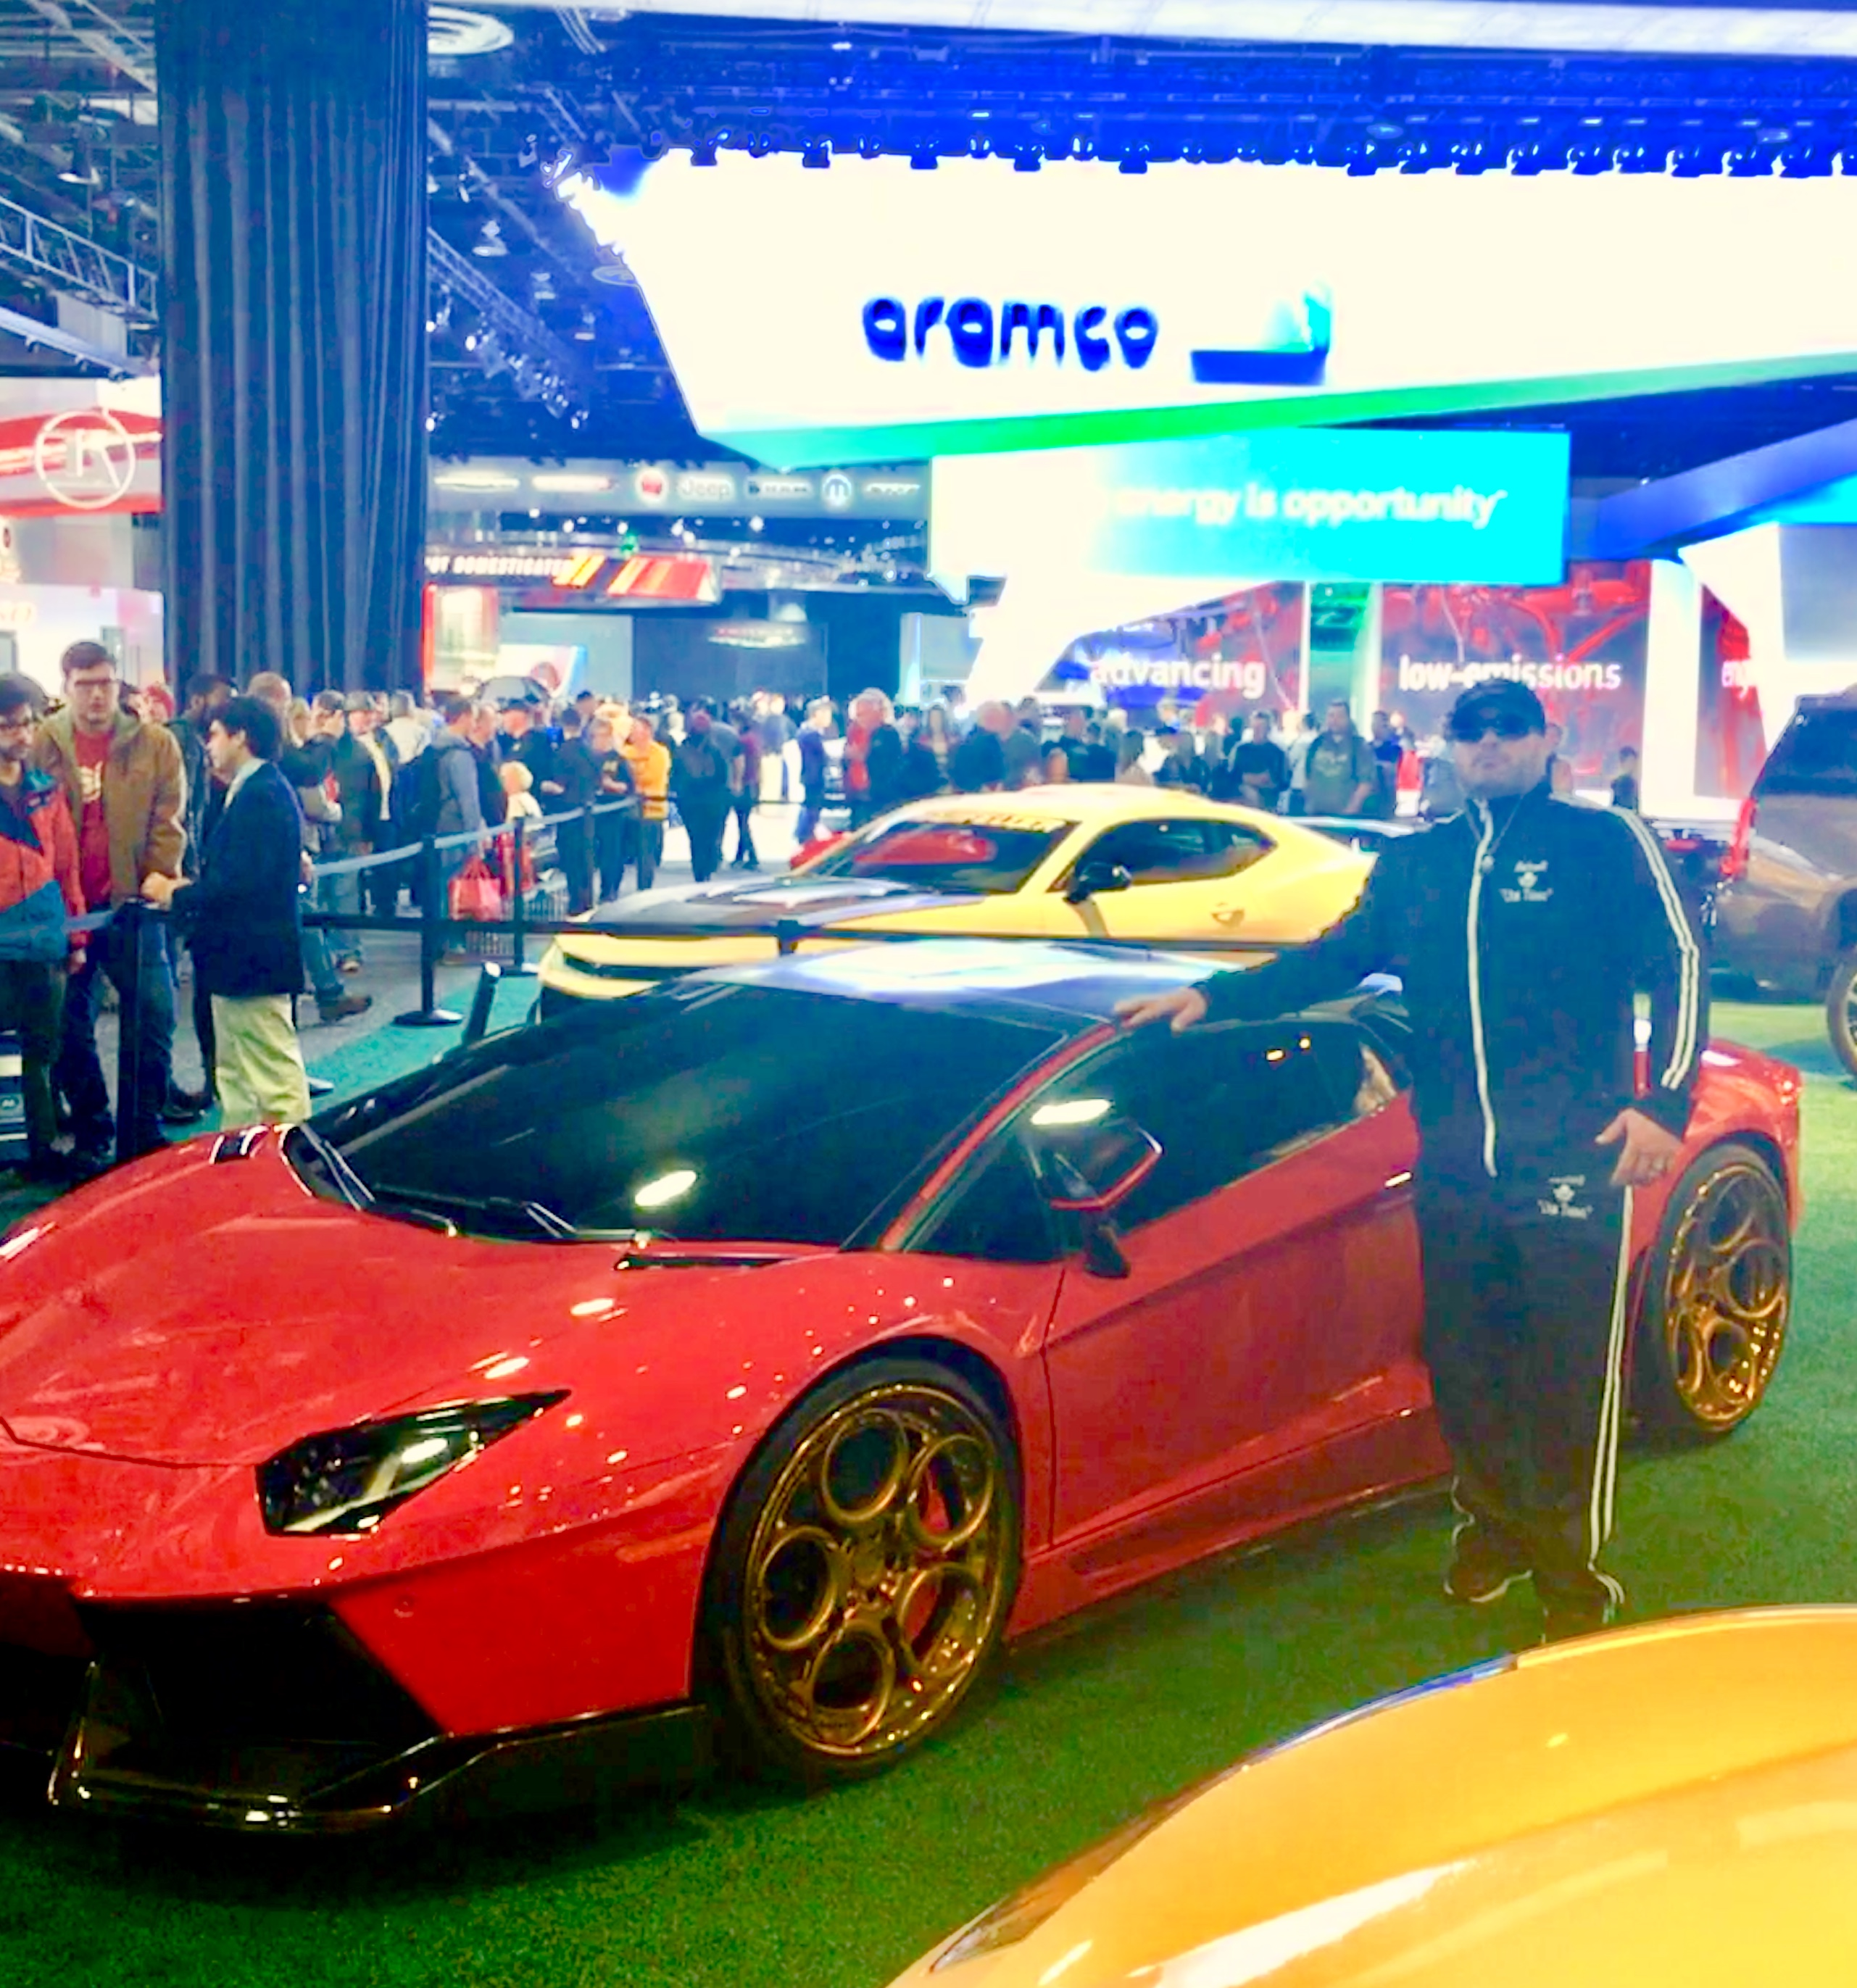 Gunner with a Lamborghini Gallardo